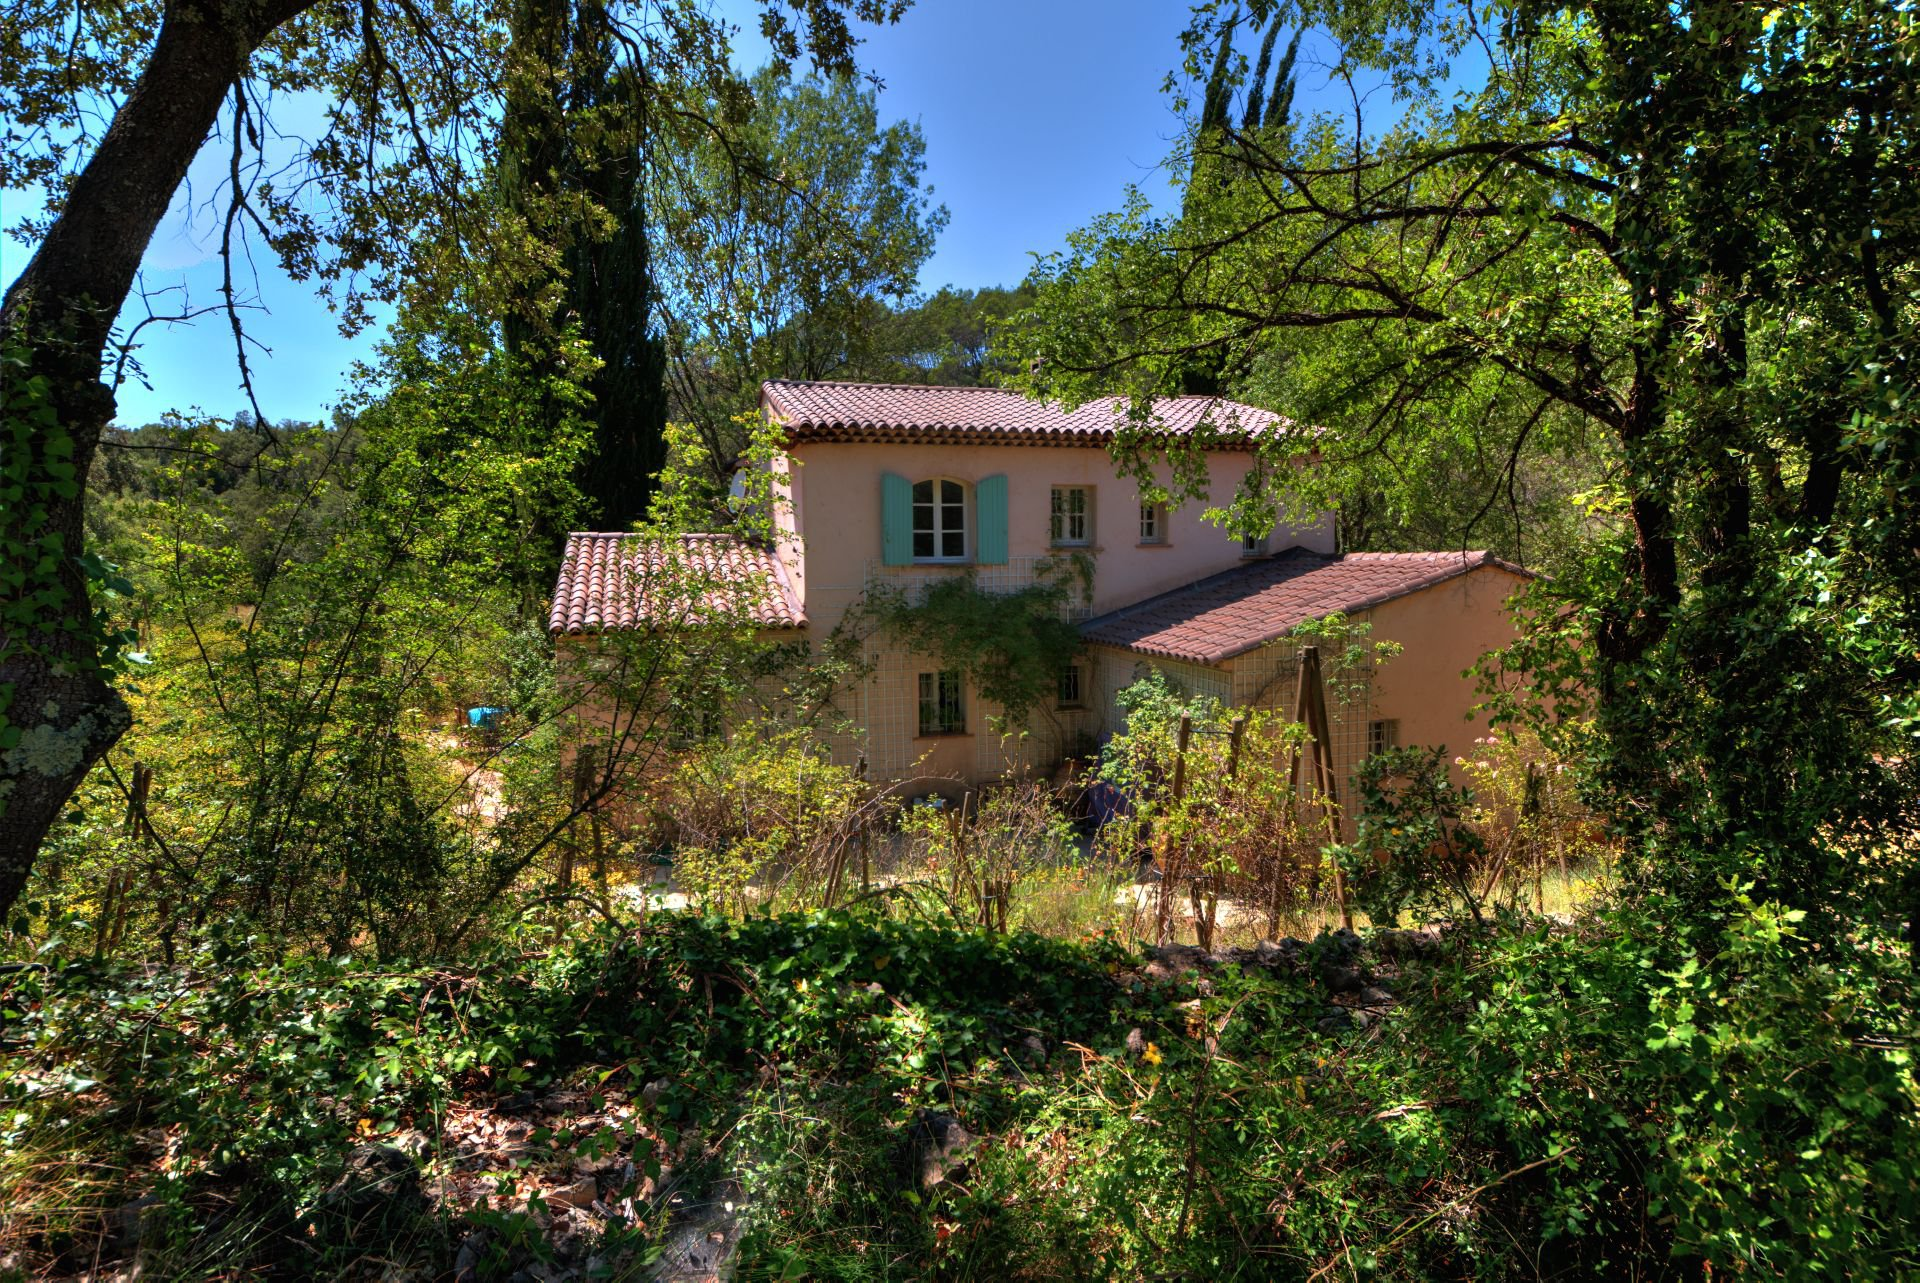 View of the villa in the heart of the nature Thoronet